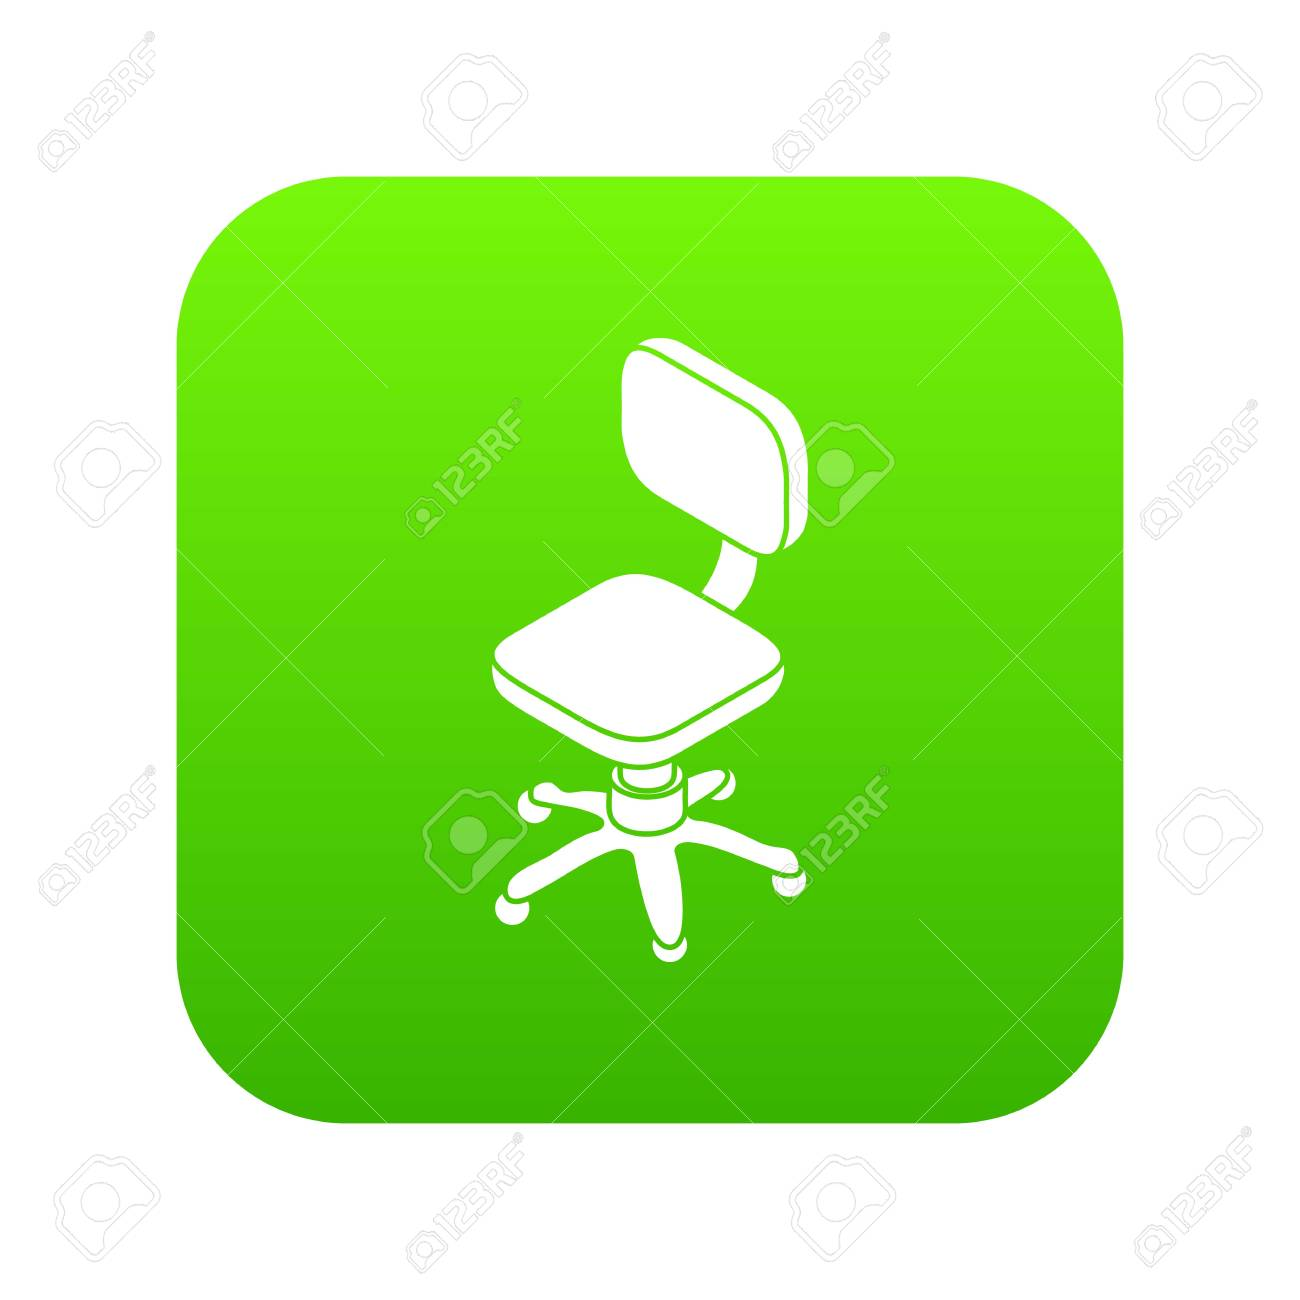 3bbf4fde9 Small wheel chair icon green vector Stock Vector - 101703699